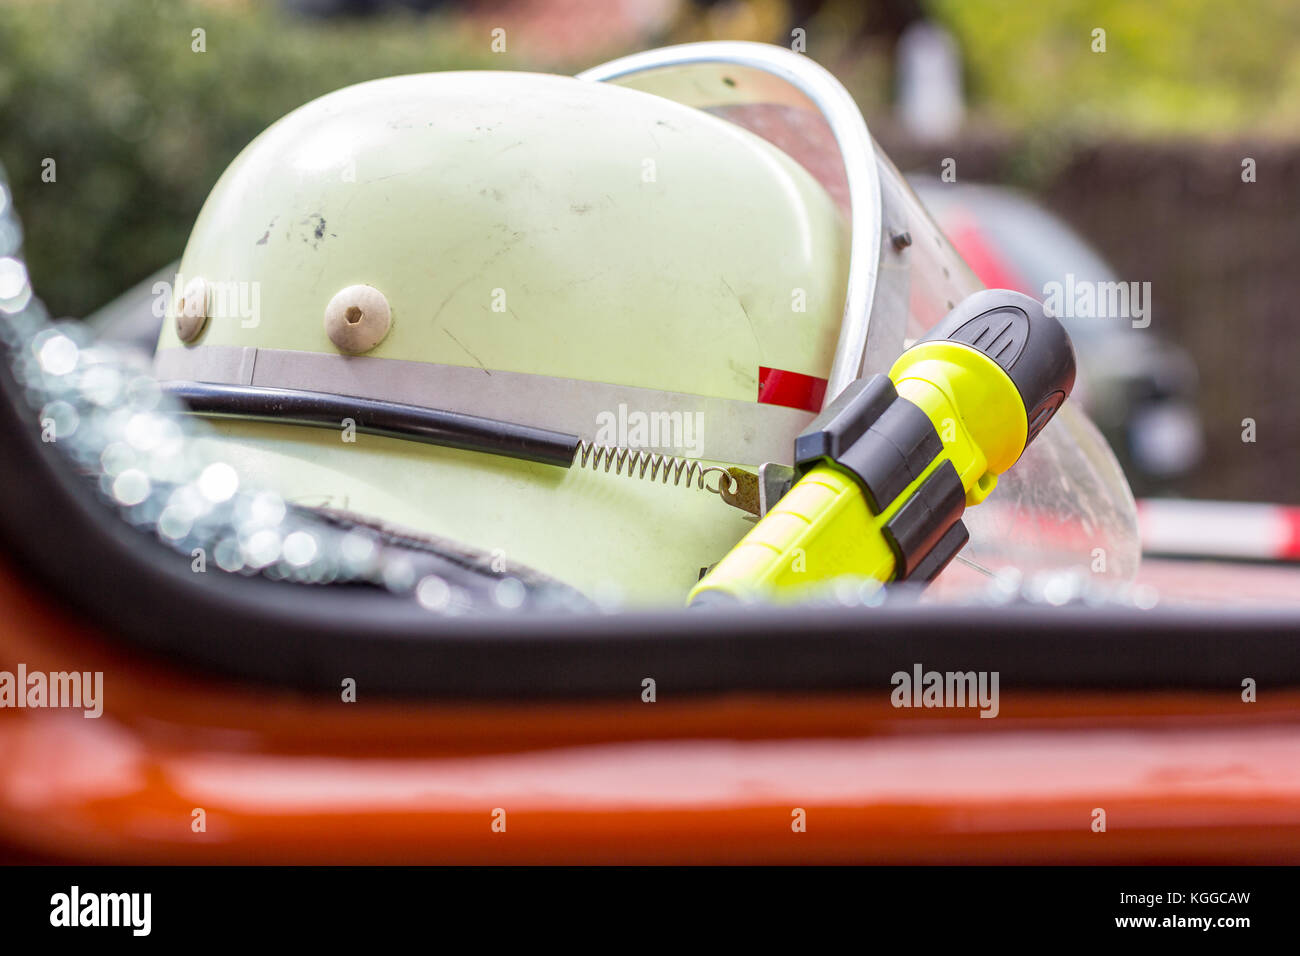 german fireman helmet with a yellow lamp - Stock Image